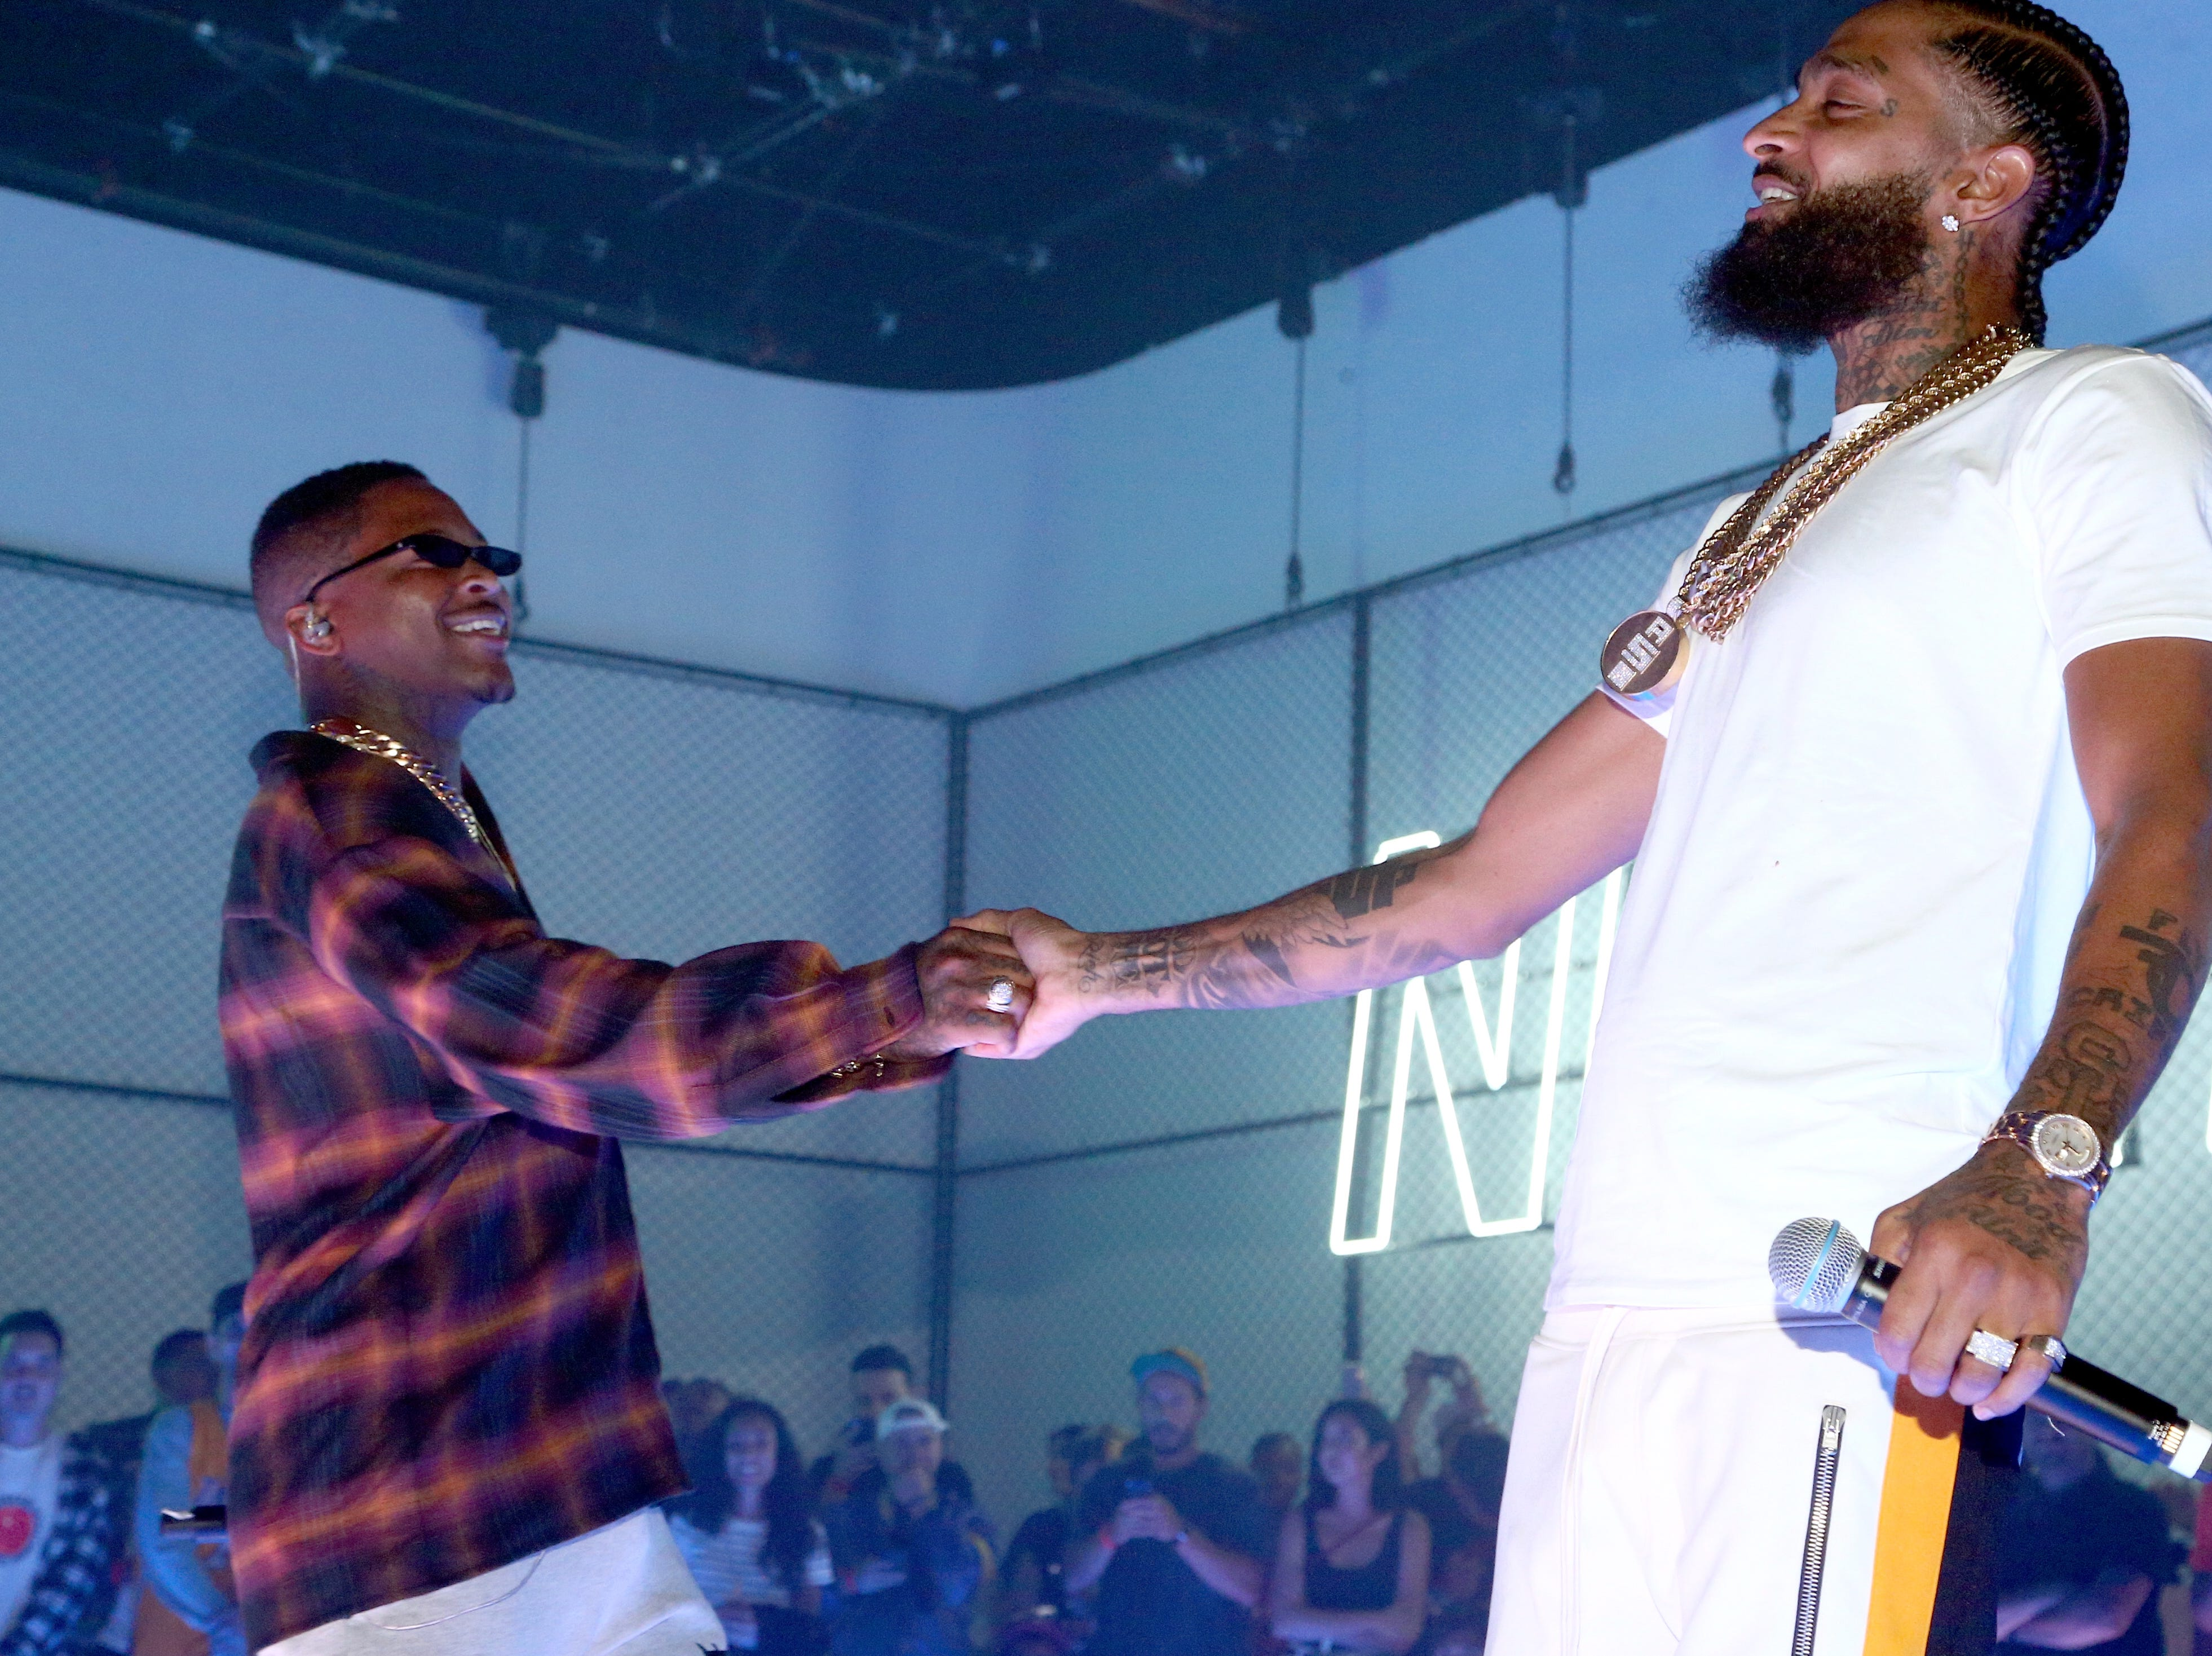 YG, left, and Nipsey Hussle perform during EA SPORTS NBA Live 19 at Goya Studios on Aug. 24, 2018, in Los Angeles.